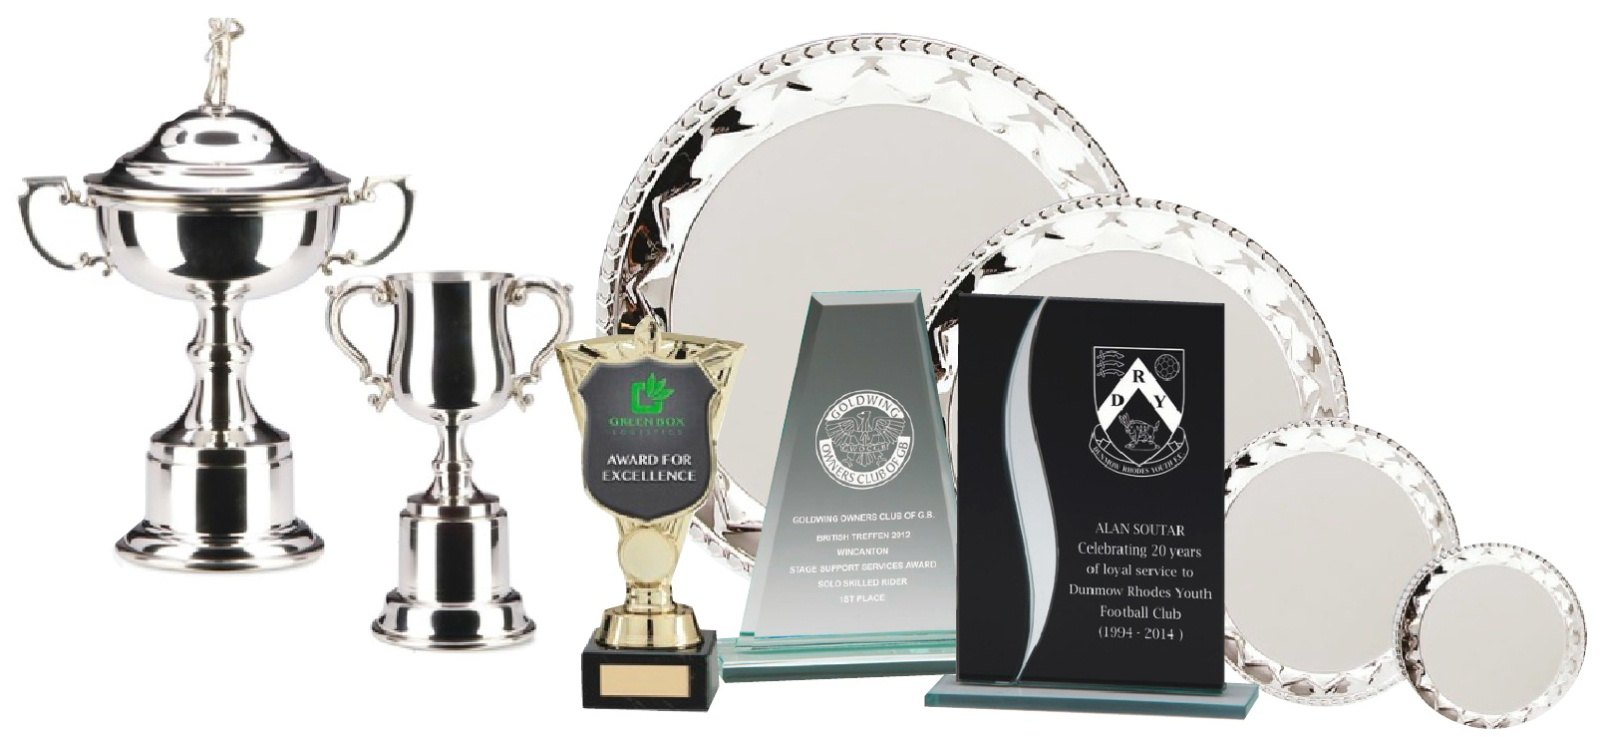 Trophy suppliers Stranraer displaying a range of cups, salvers and plaques engraved for local heroes